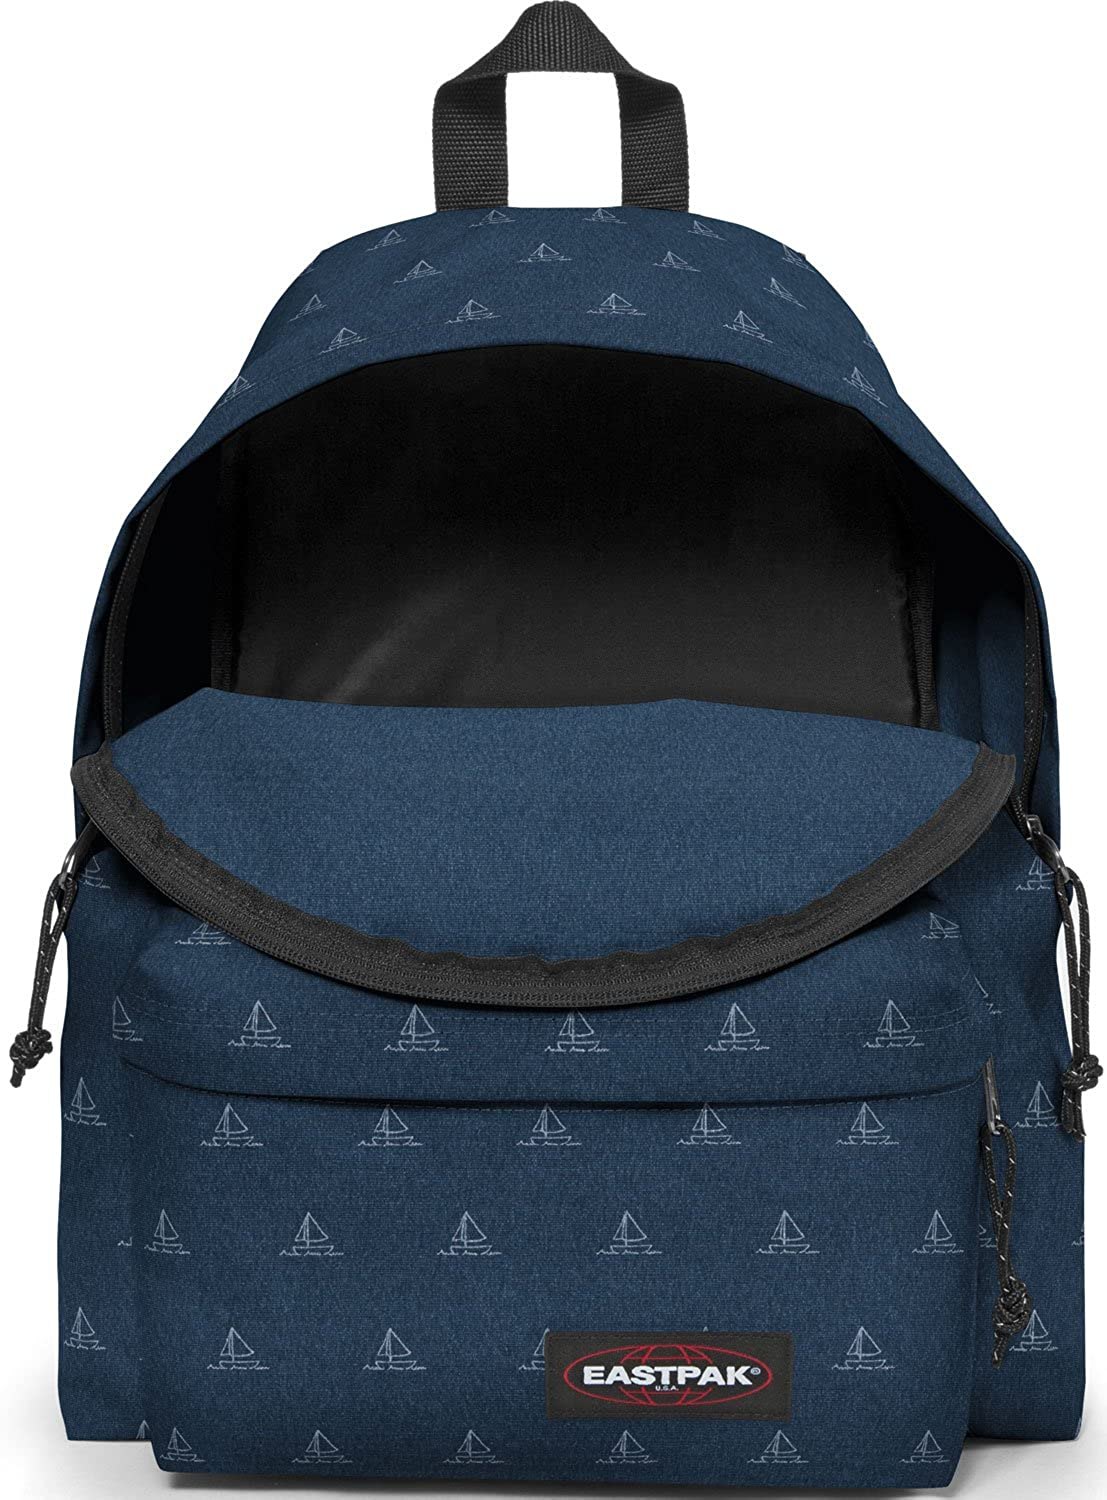 c059b22646 Eastpak EK62003S zaino: Amazon.it: Informatica